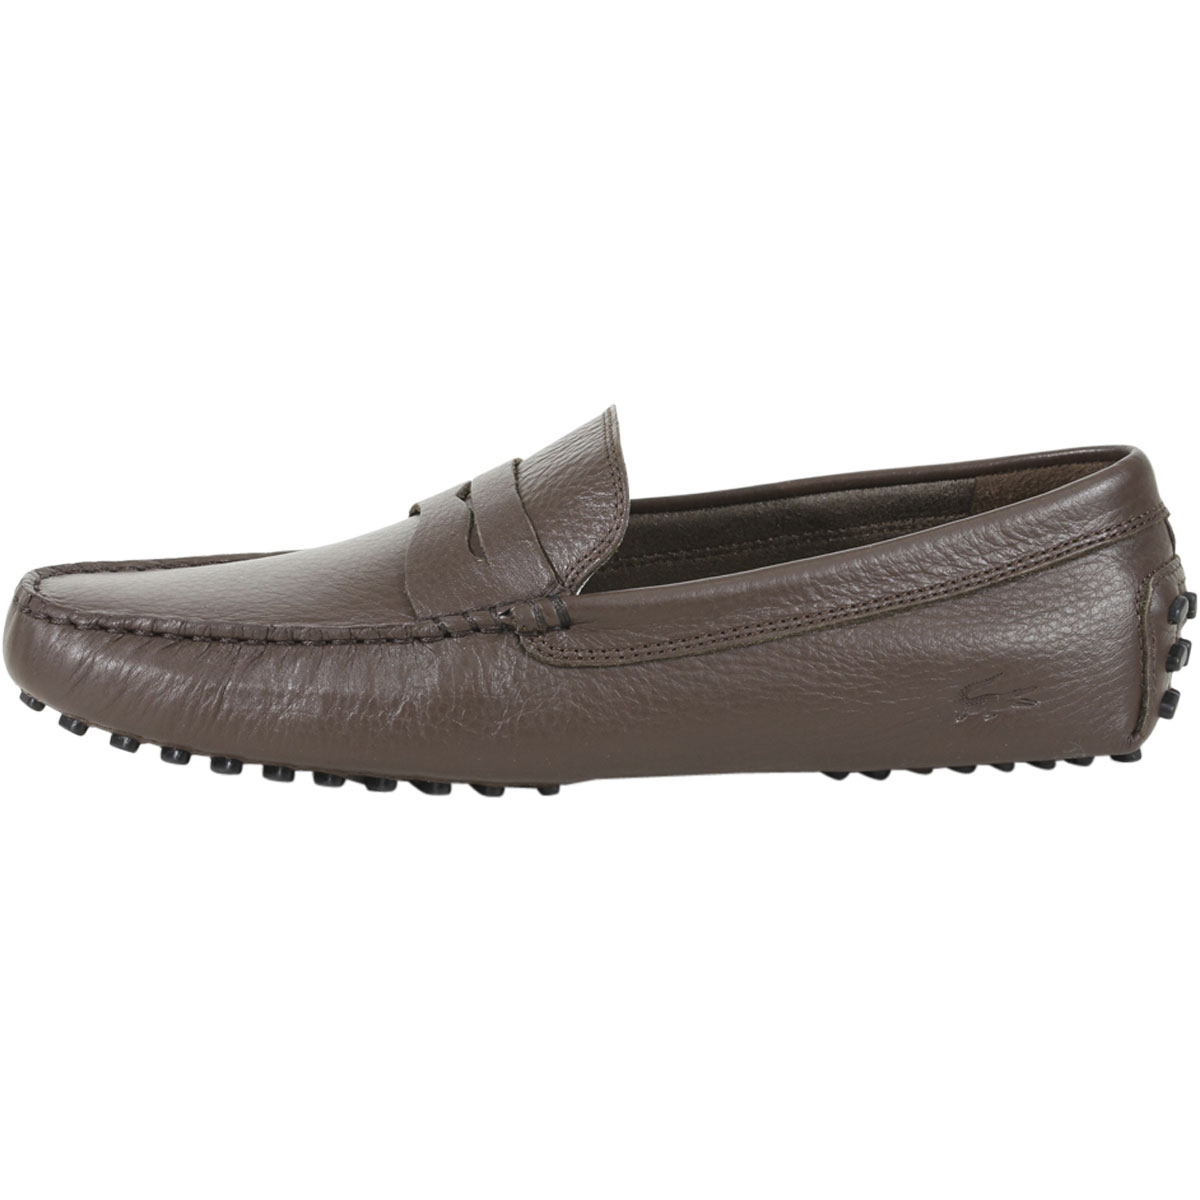 Concours-118 Driving Loafers Shoes